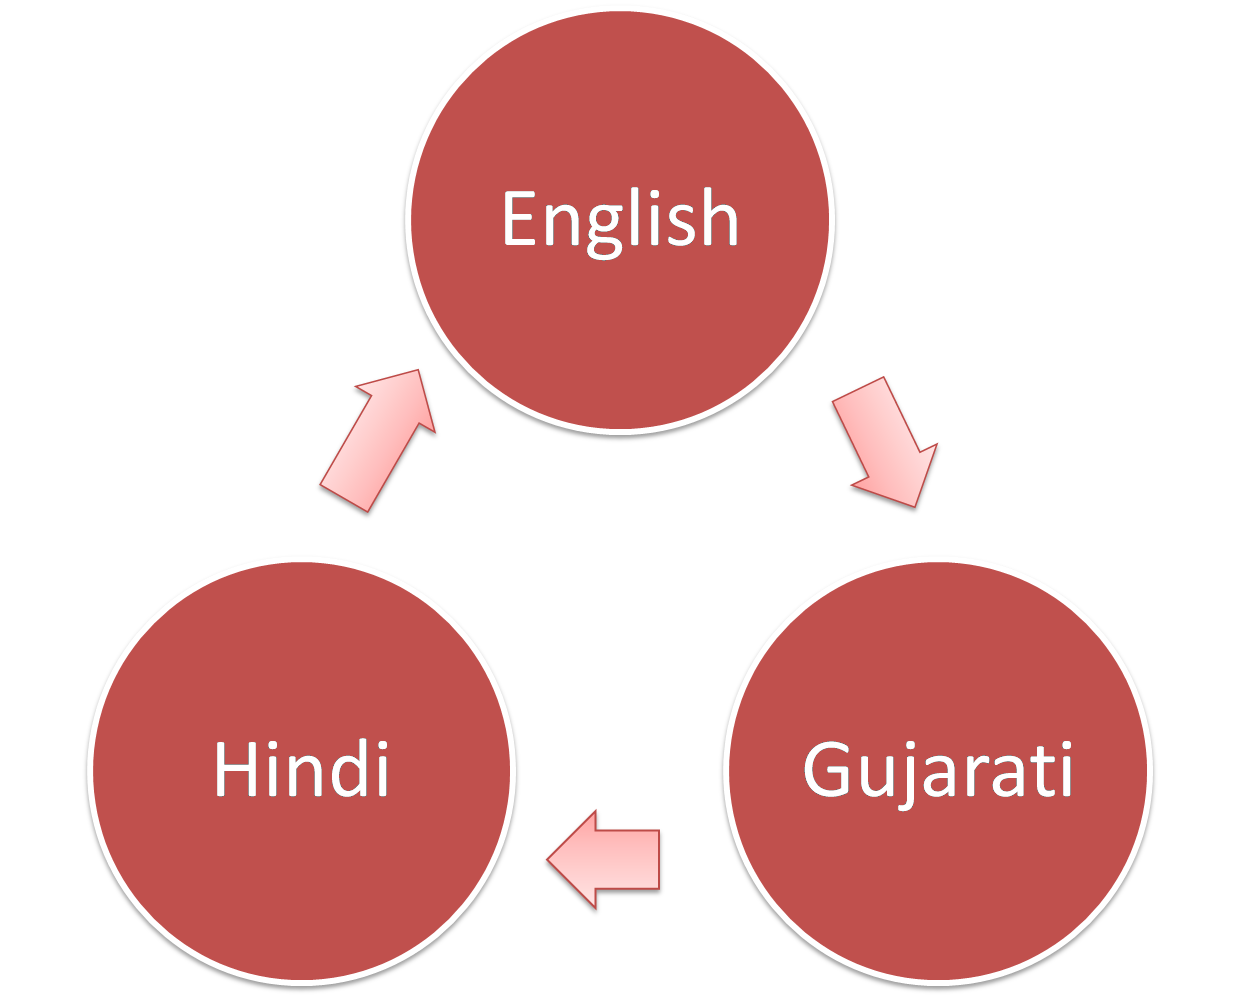 Translation from English to Hindi & Gujarati